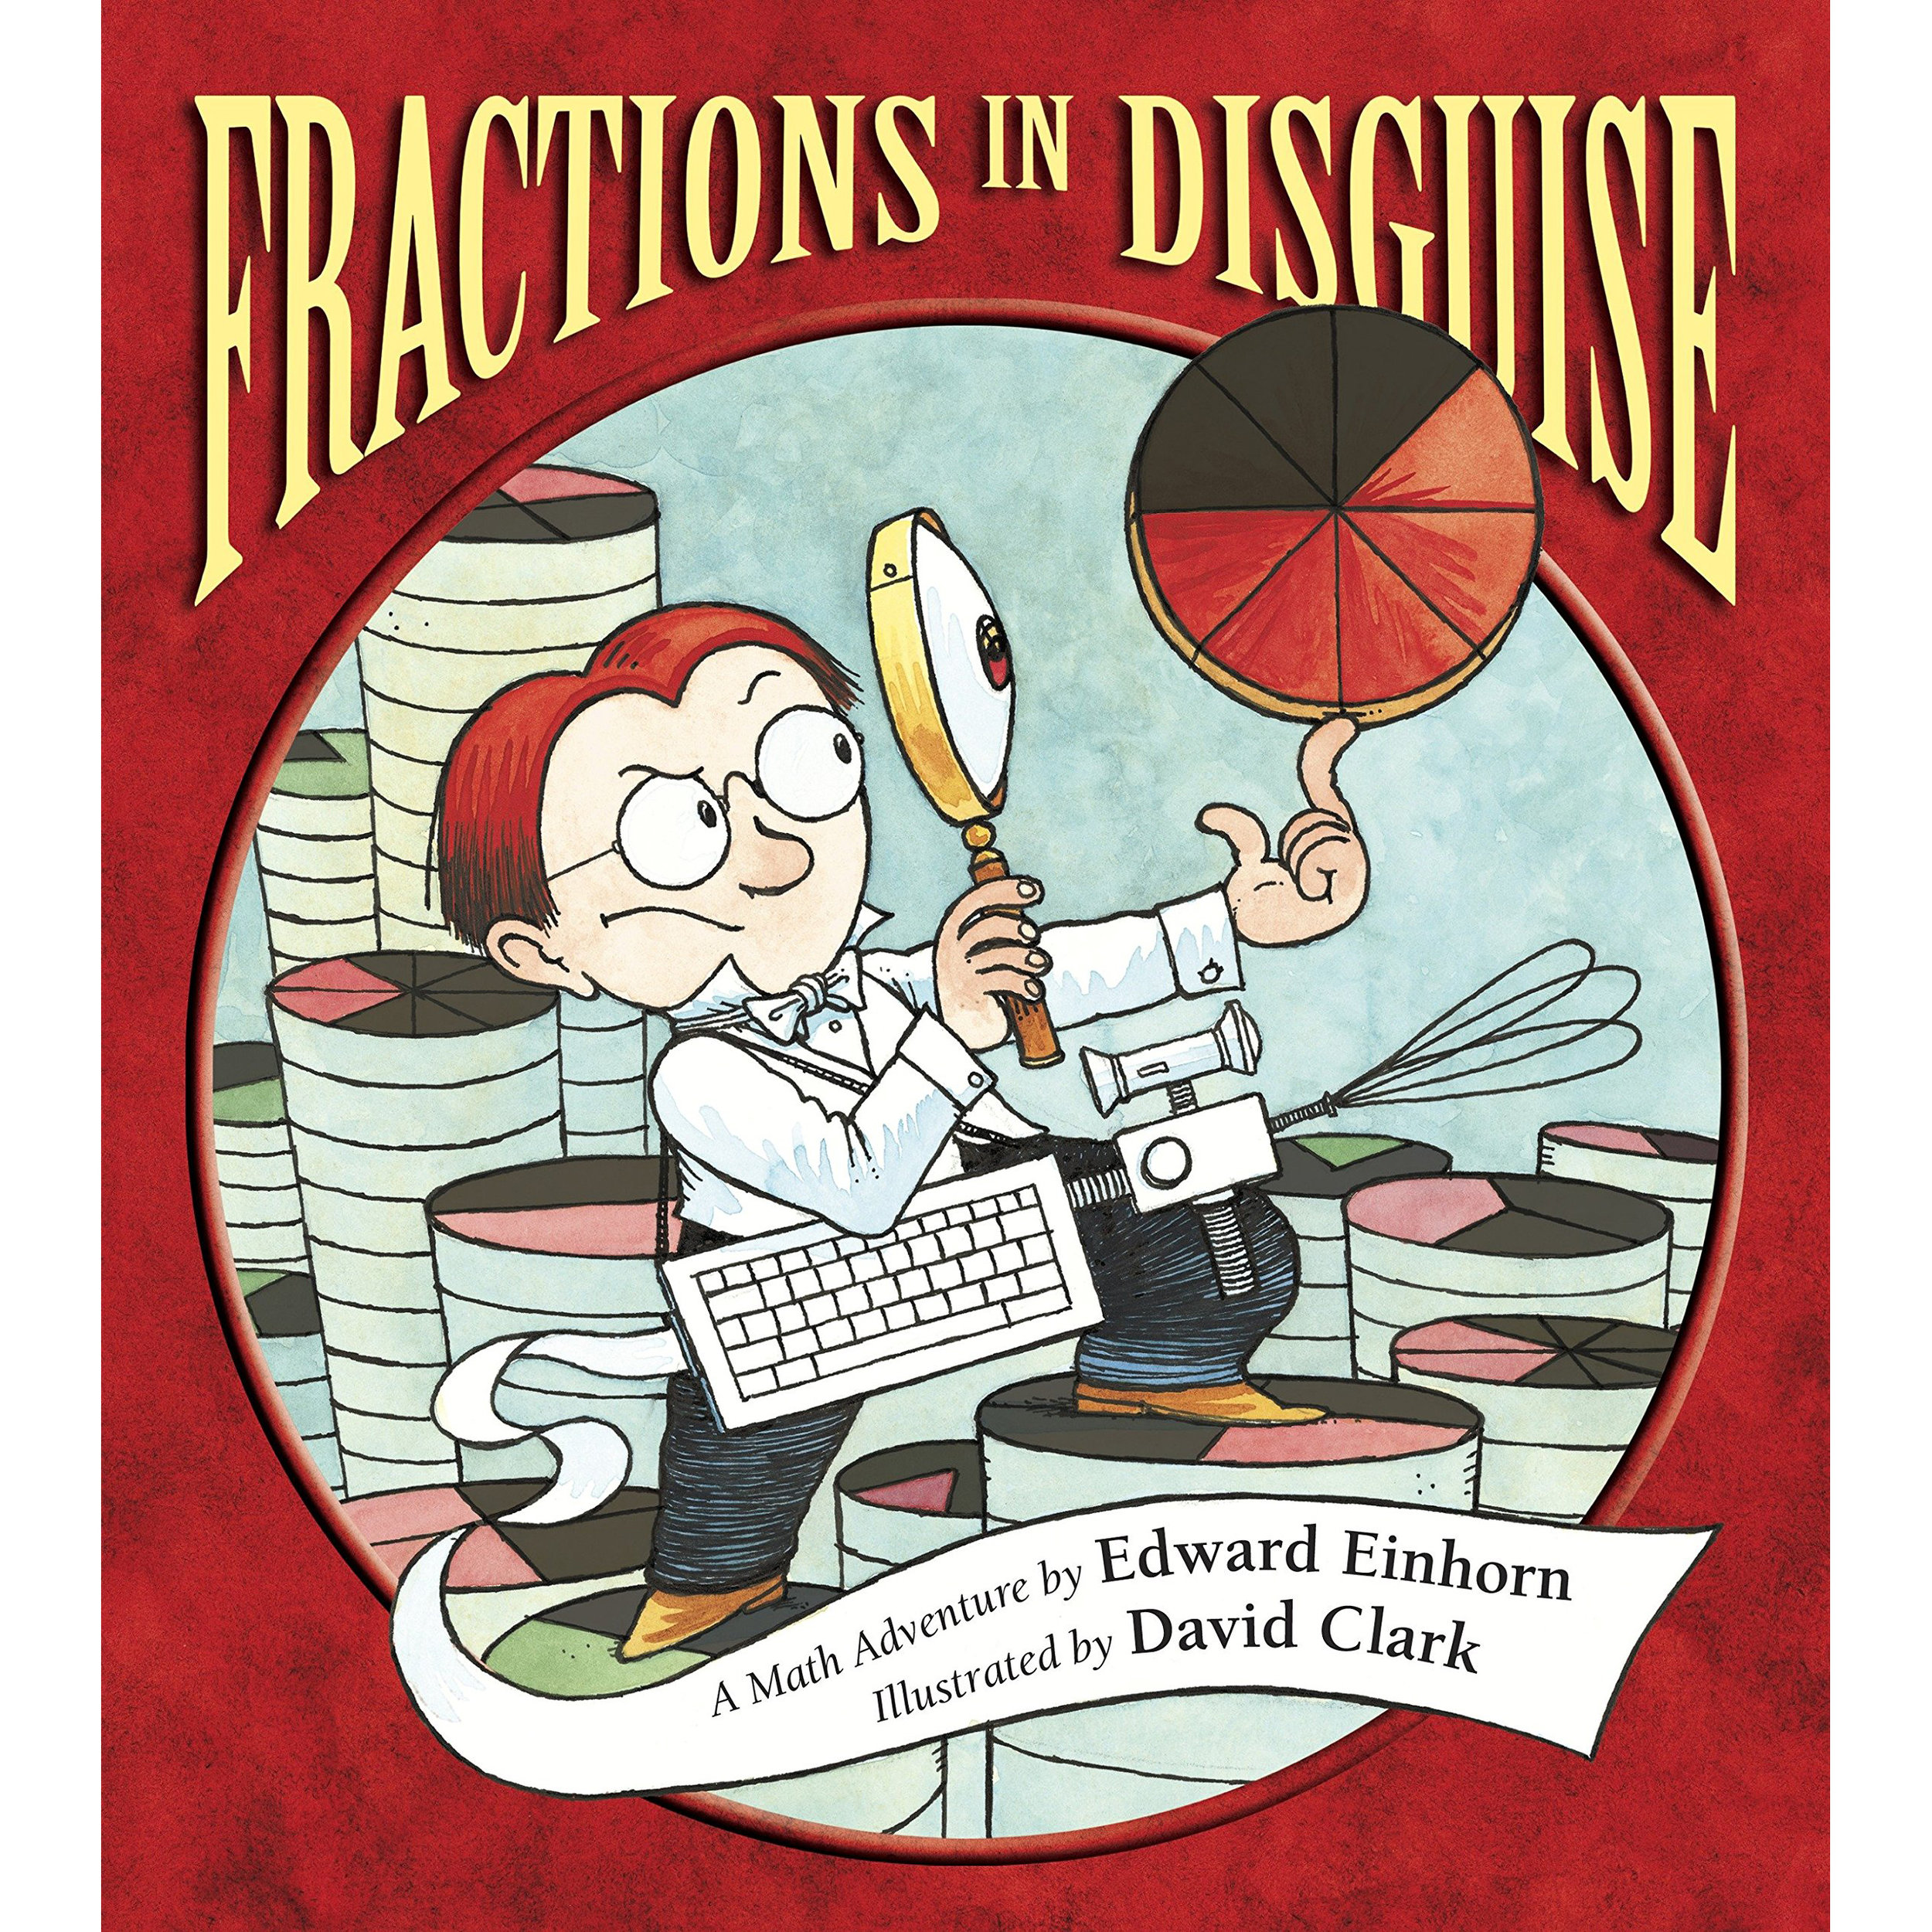 Fractions in Disguise - When a valuable fraction goes missing, George Cornelius Factor (a.k.a. GCF) vows to track it down. Knowing that the villainous Dr. Brok likes to disguise his ill-begotten fractions, GCF invents a Reducer—a tool that strips away the disguise, reducing the fraction and revealing its true form. Equal parts of action and humor add up to a wholly entertaining introduction to simplifying fractions. Illustrated by David Clark.